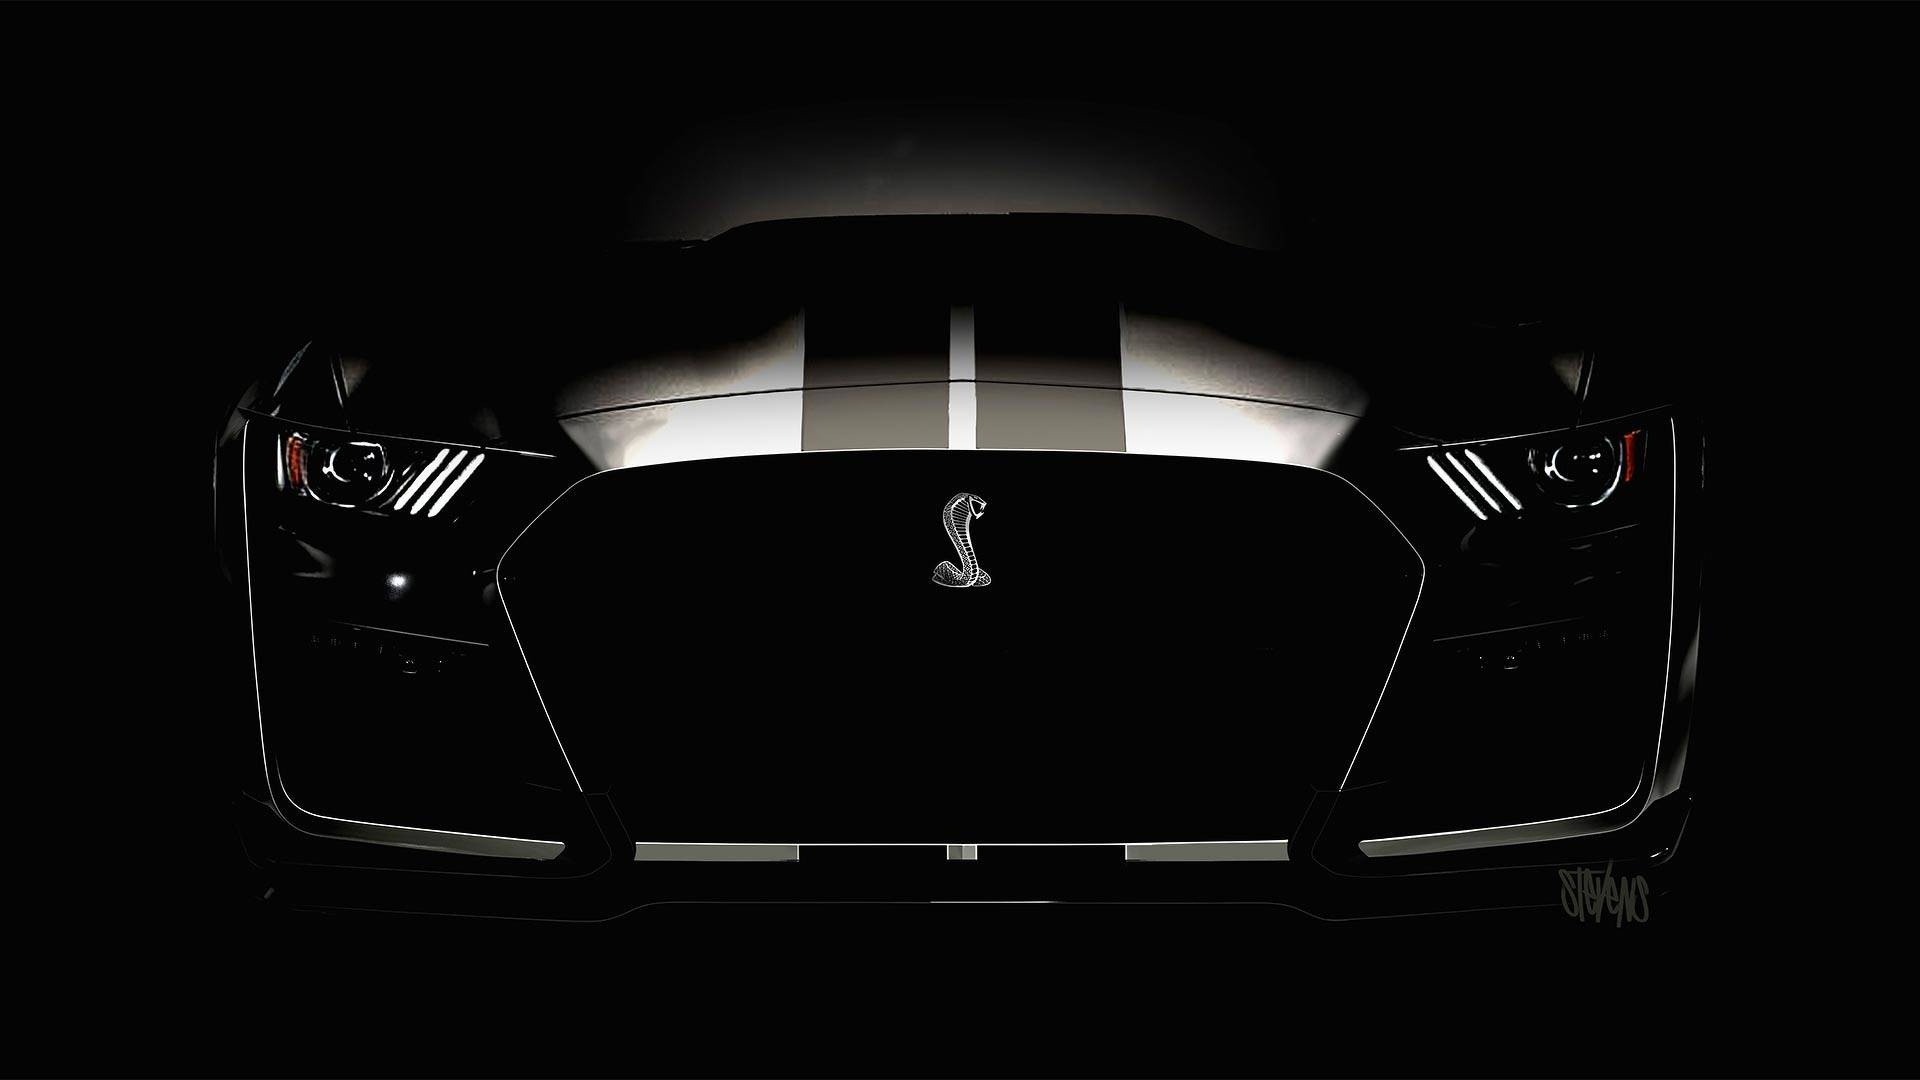 mustang gt500 shelby ford headlights facelift teased again pre hid autoevolution teaser